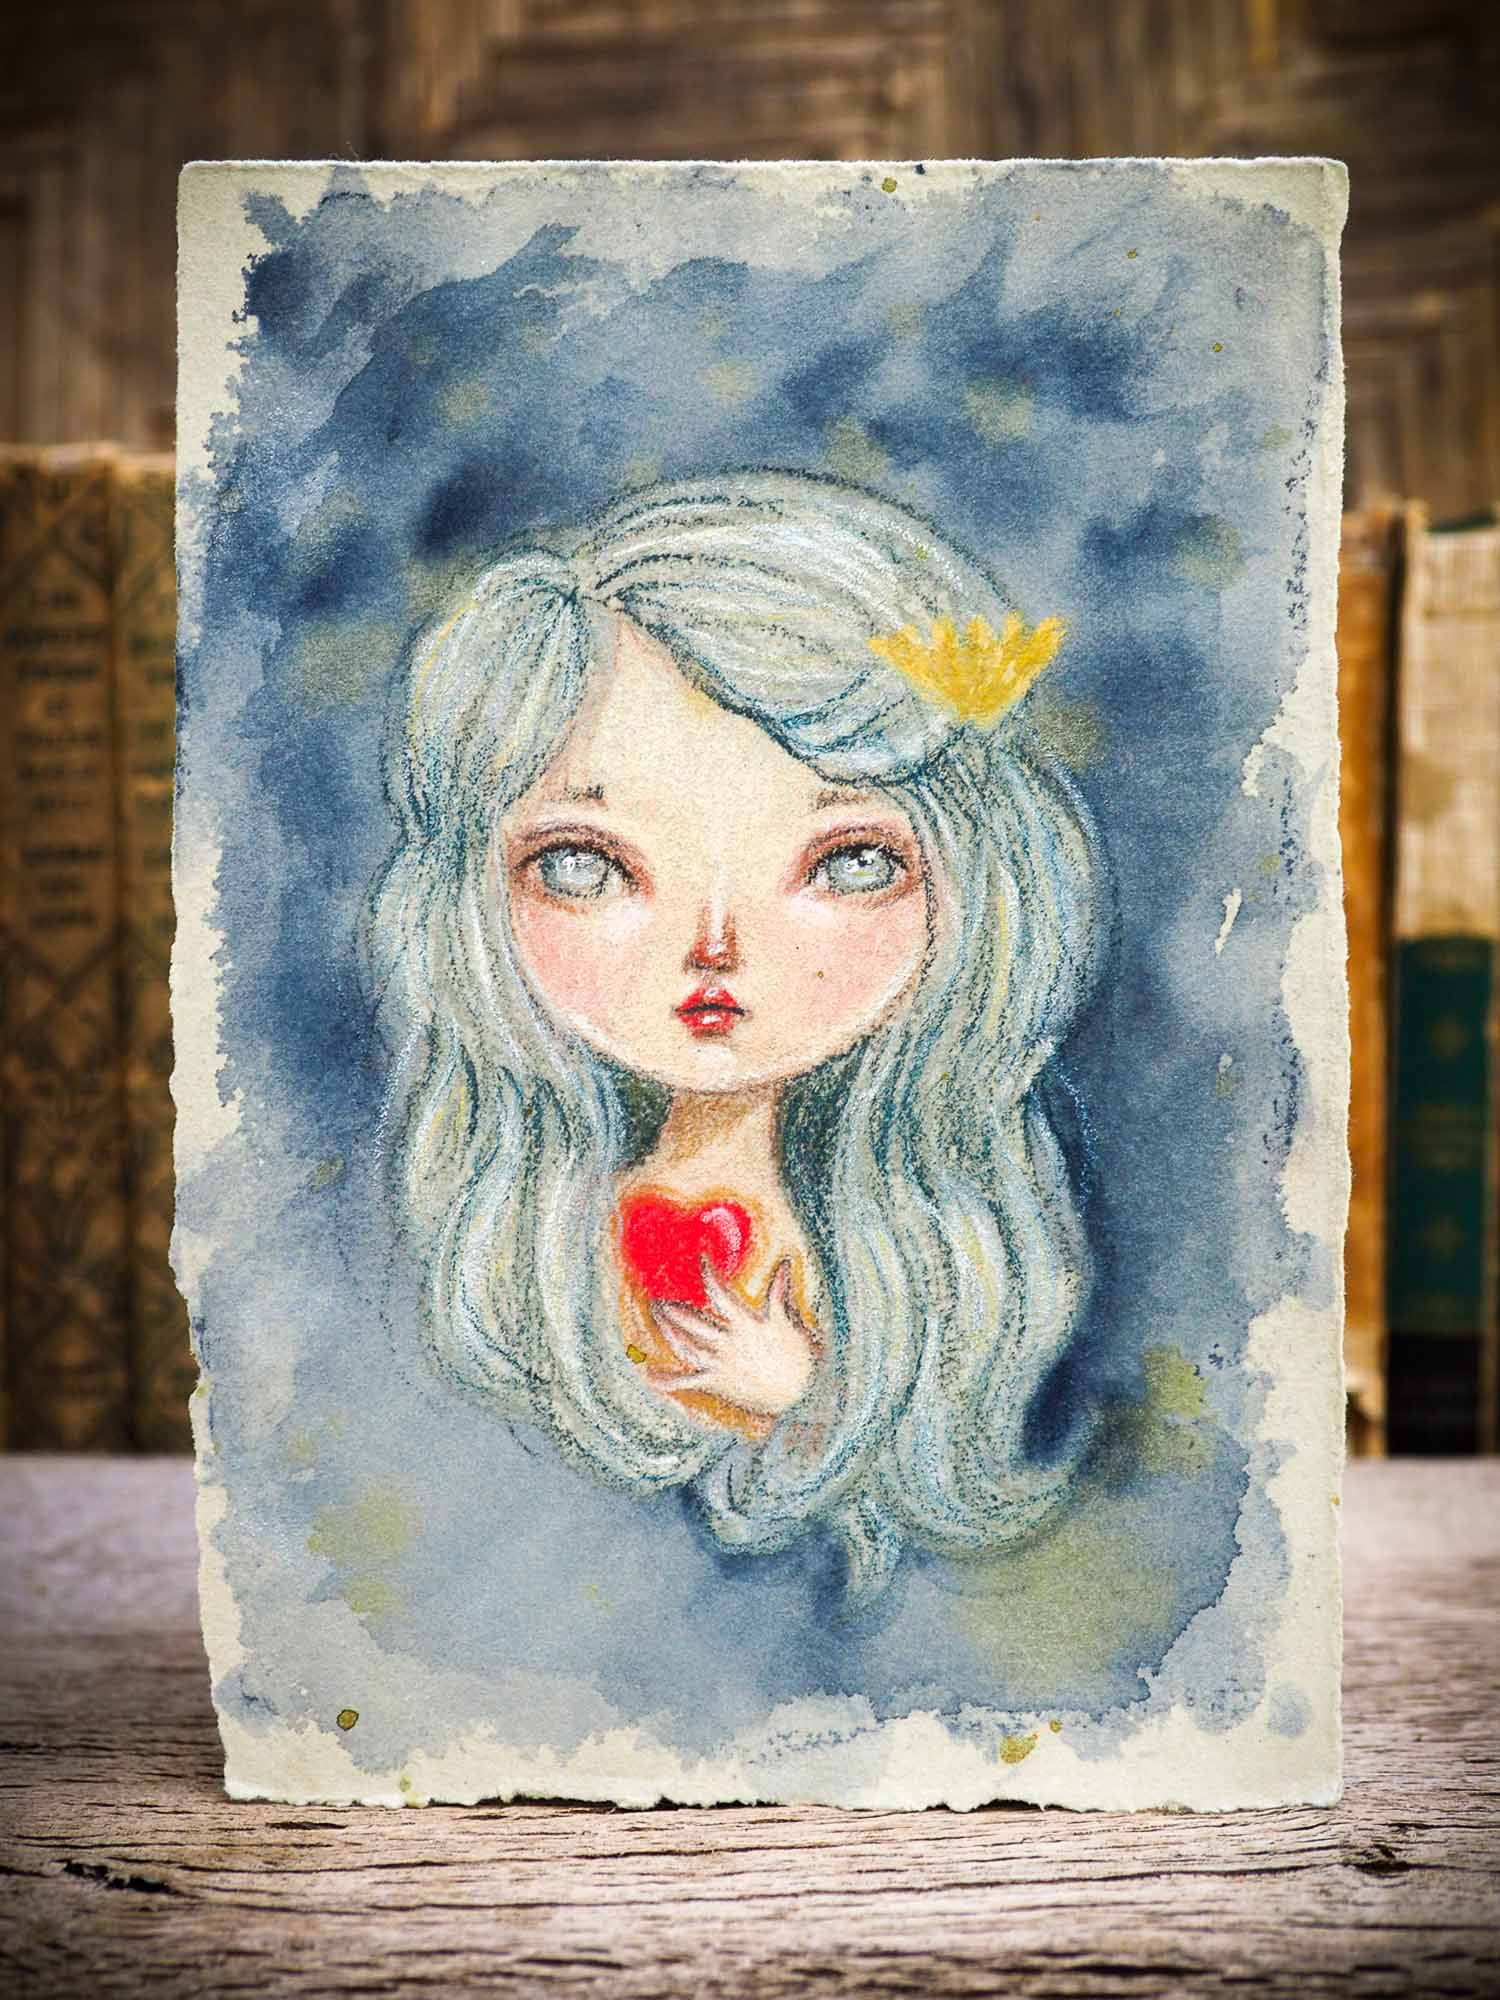 Original Mermaid color pencil and watercolor illustration on hand made paper by Danita Art. A beautiful drawing in colored pencil features fantasy art mermaid and siren with a red heart in her hands by Danita Art.